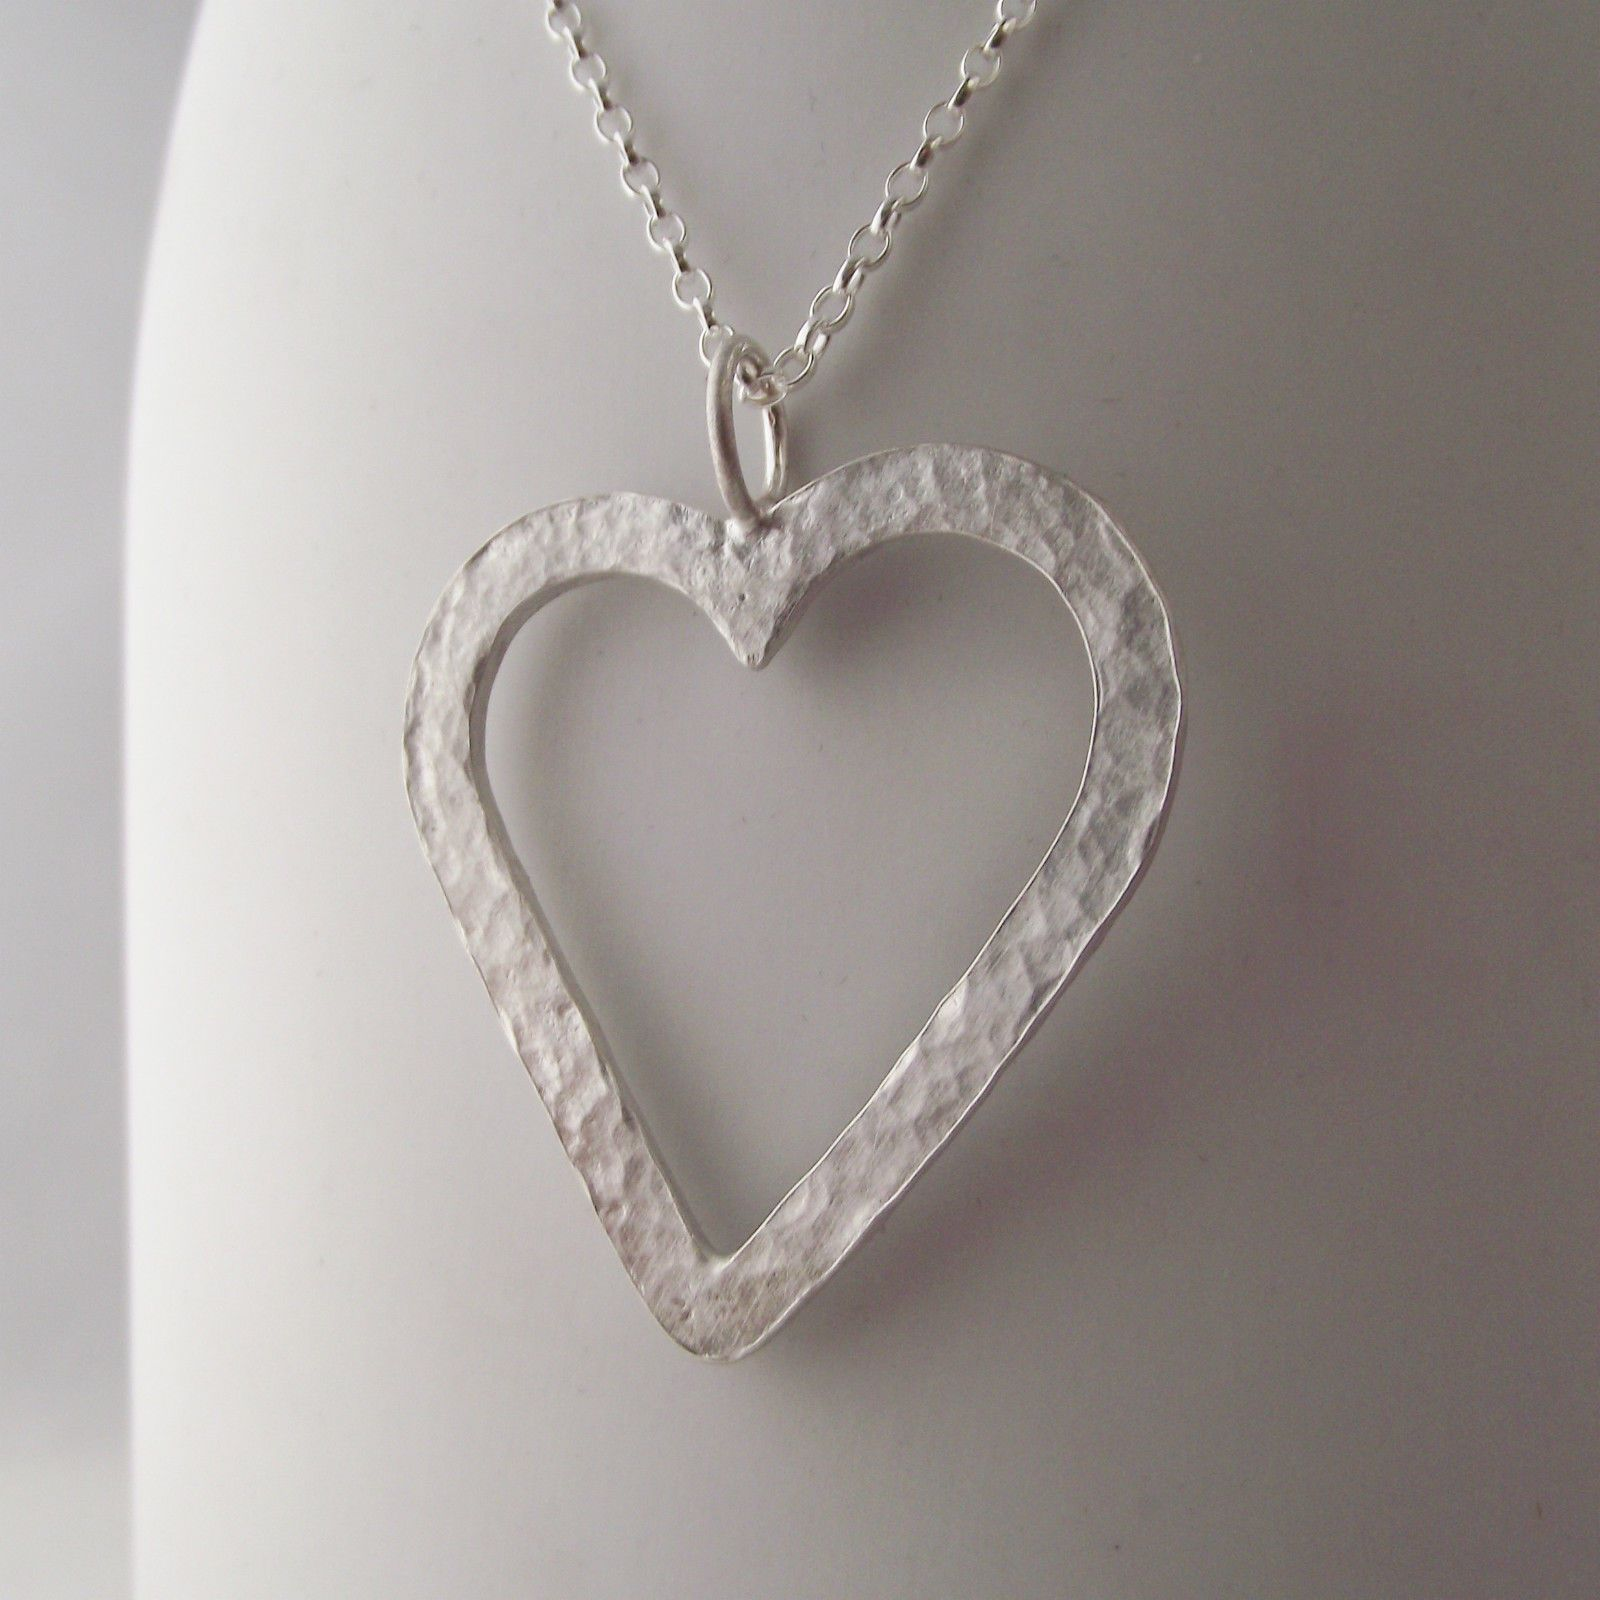 Stunning necklace handmade sterling silver hammer finish large heart stunning necklace handmade sterling silver hammer finish large heart pendant aloadofball Choice Image